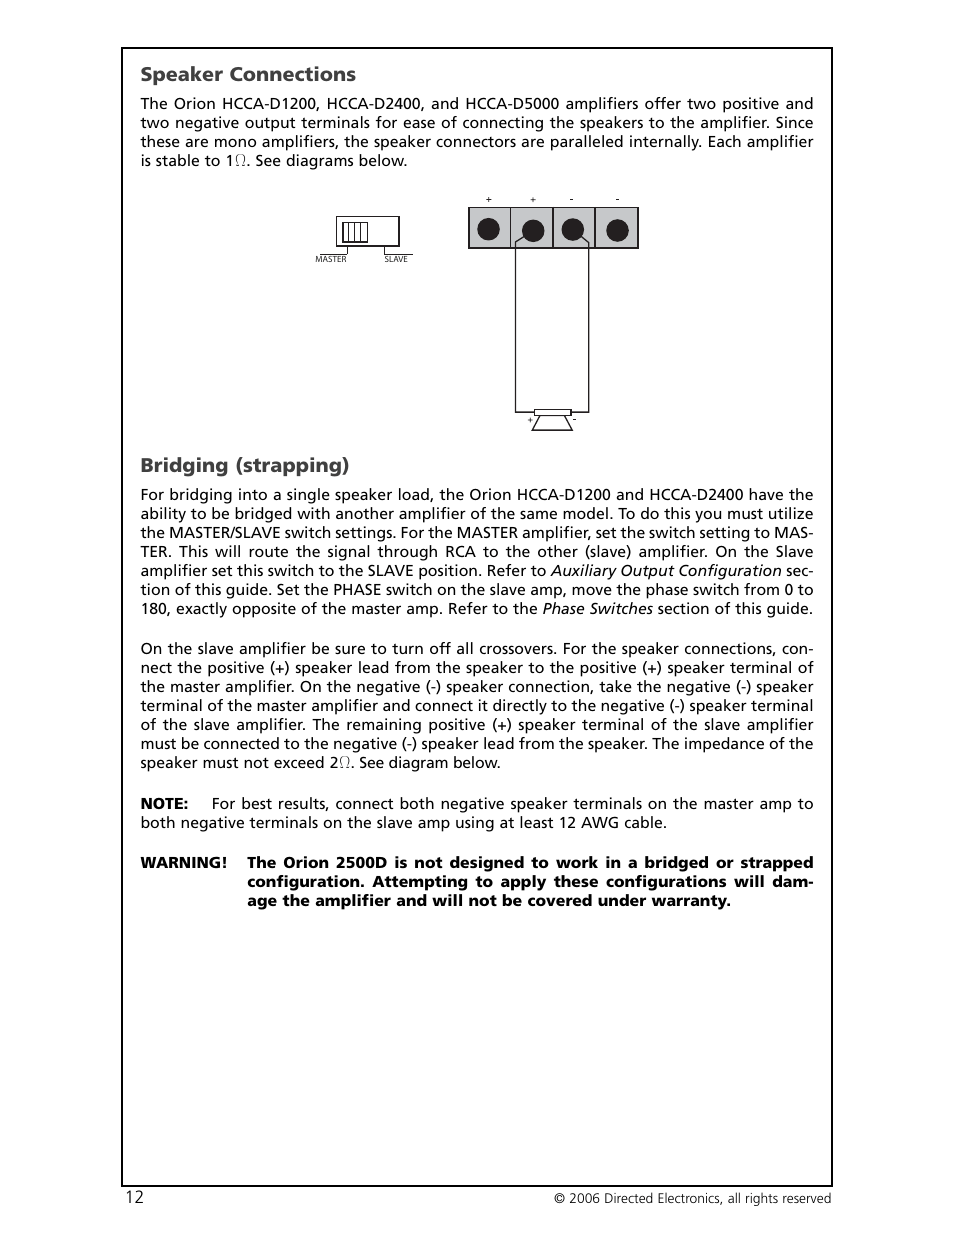 medium resolution of speaker connections bridging strapping directed electronics hcca d1200 user manual